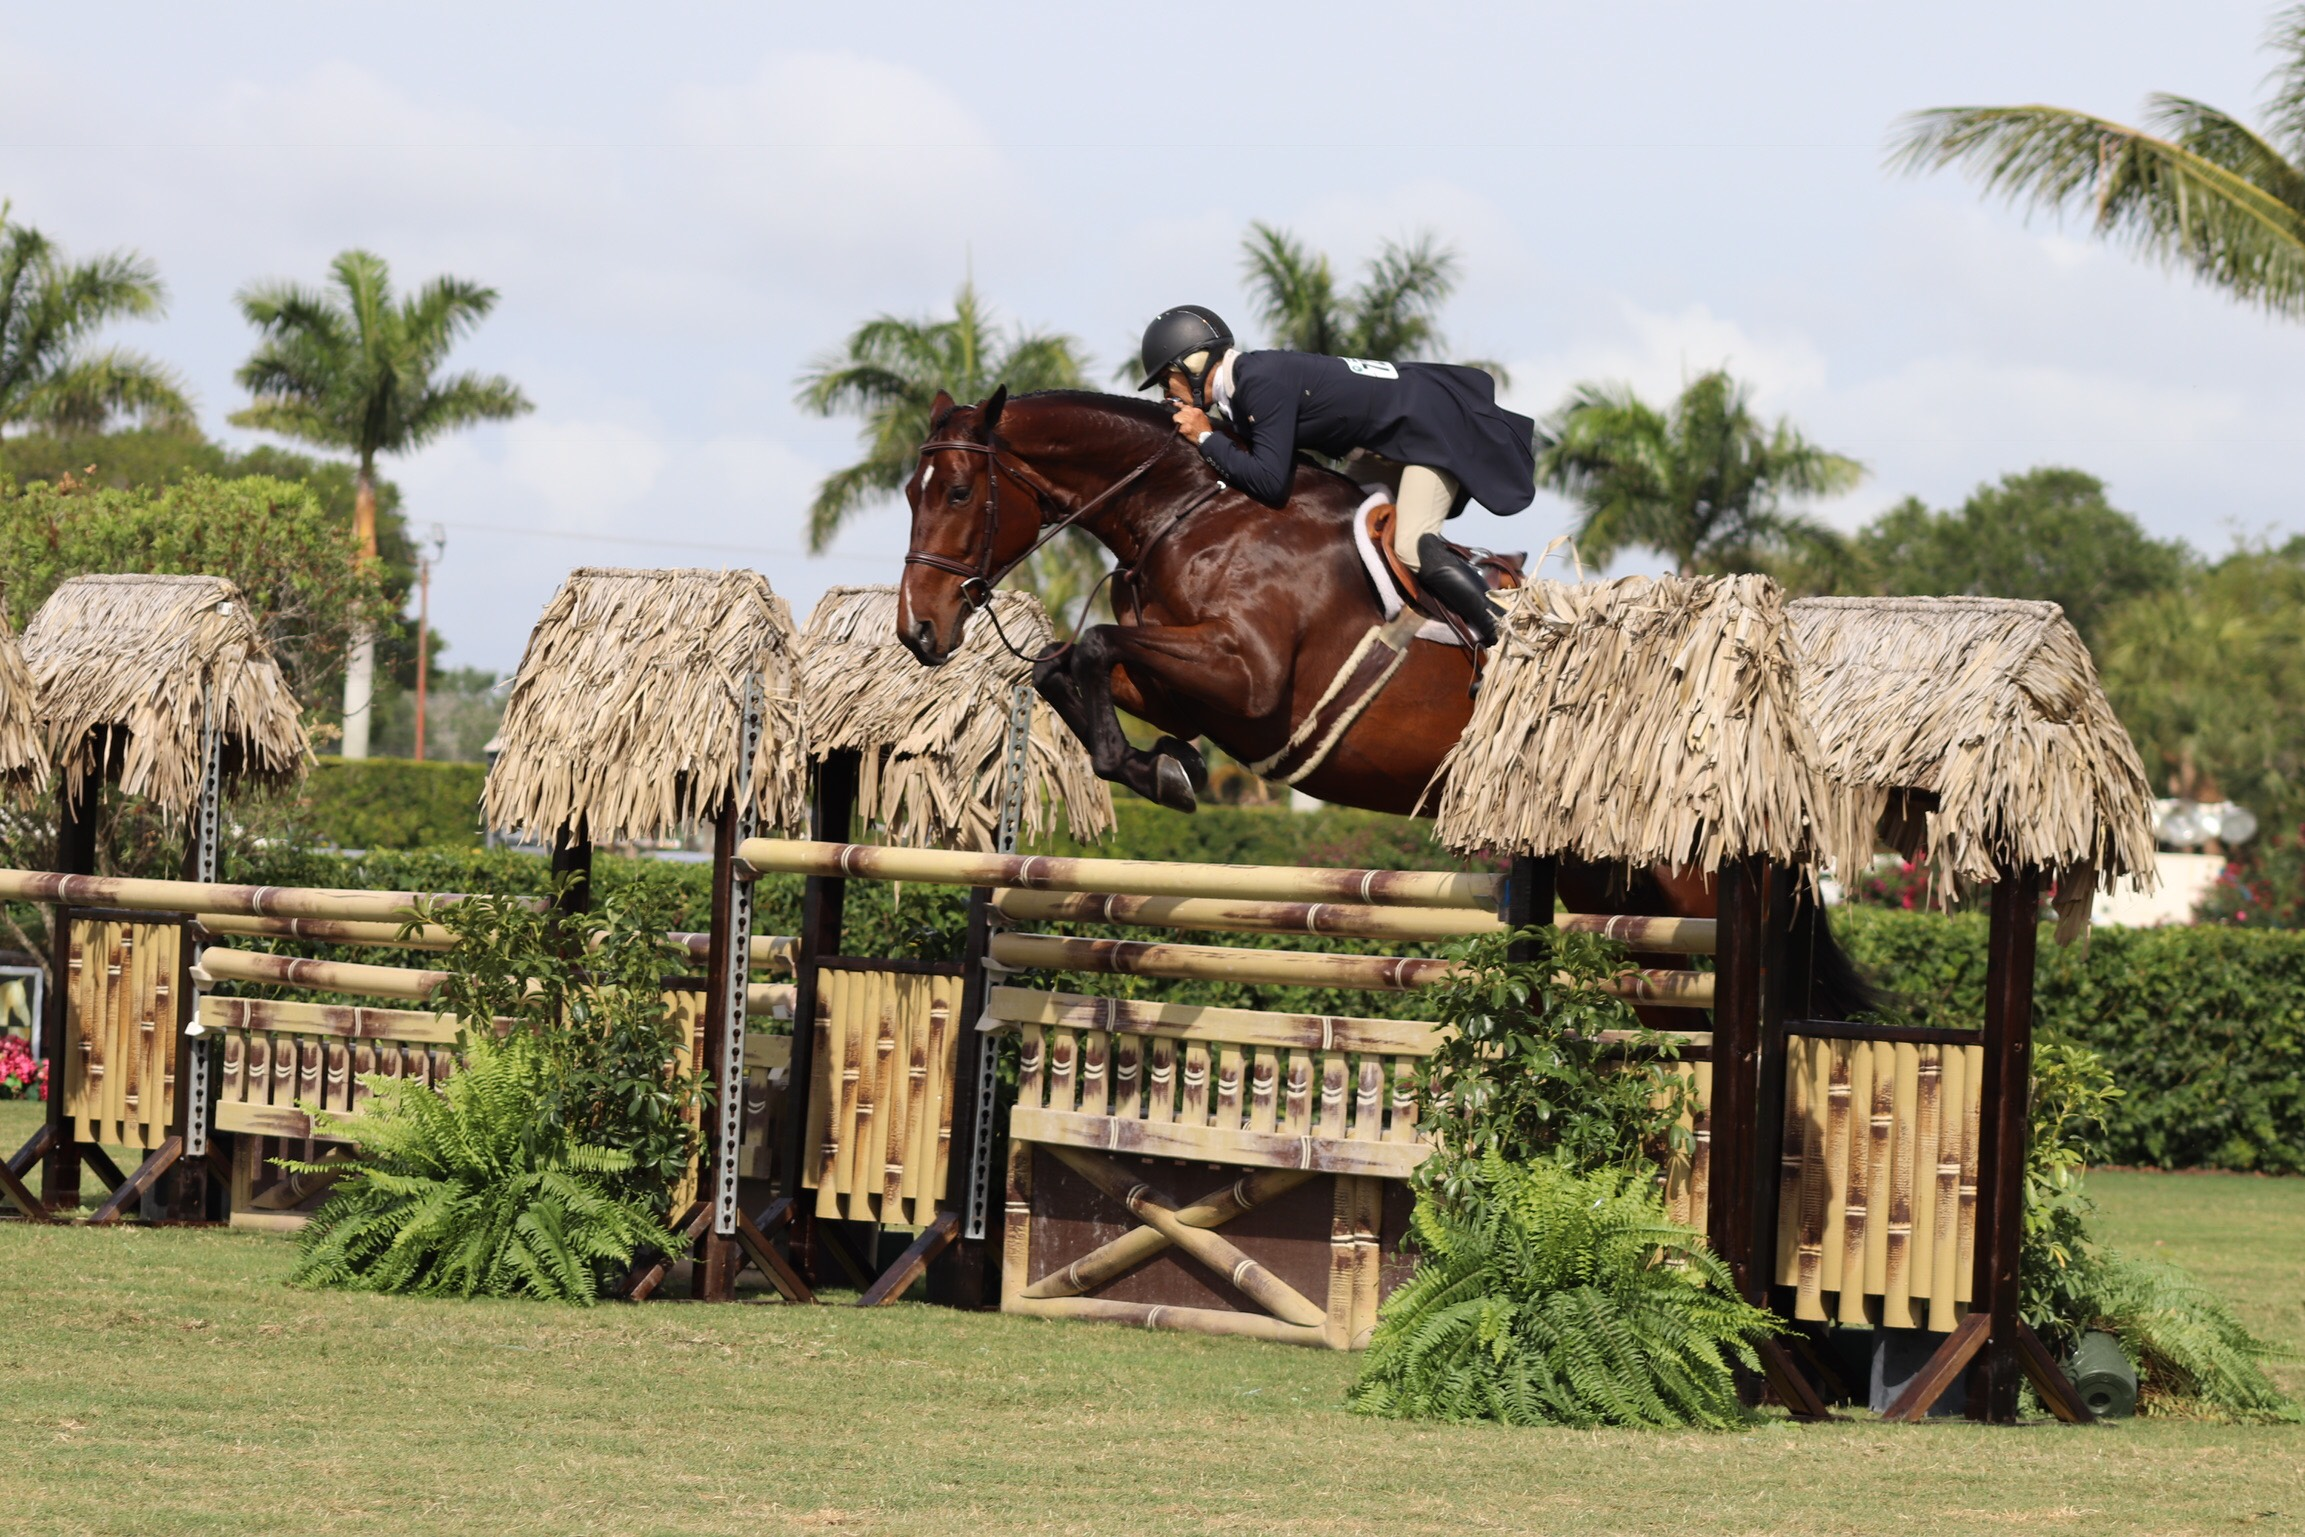 Holly and Gracie jumped all four high options available during the derby.